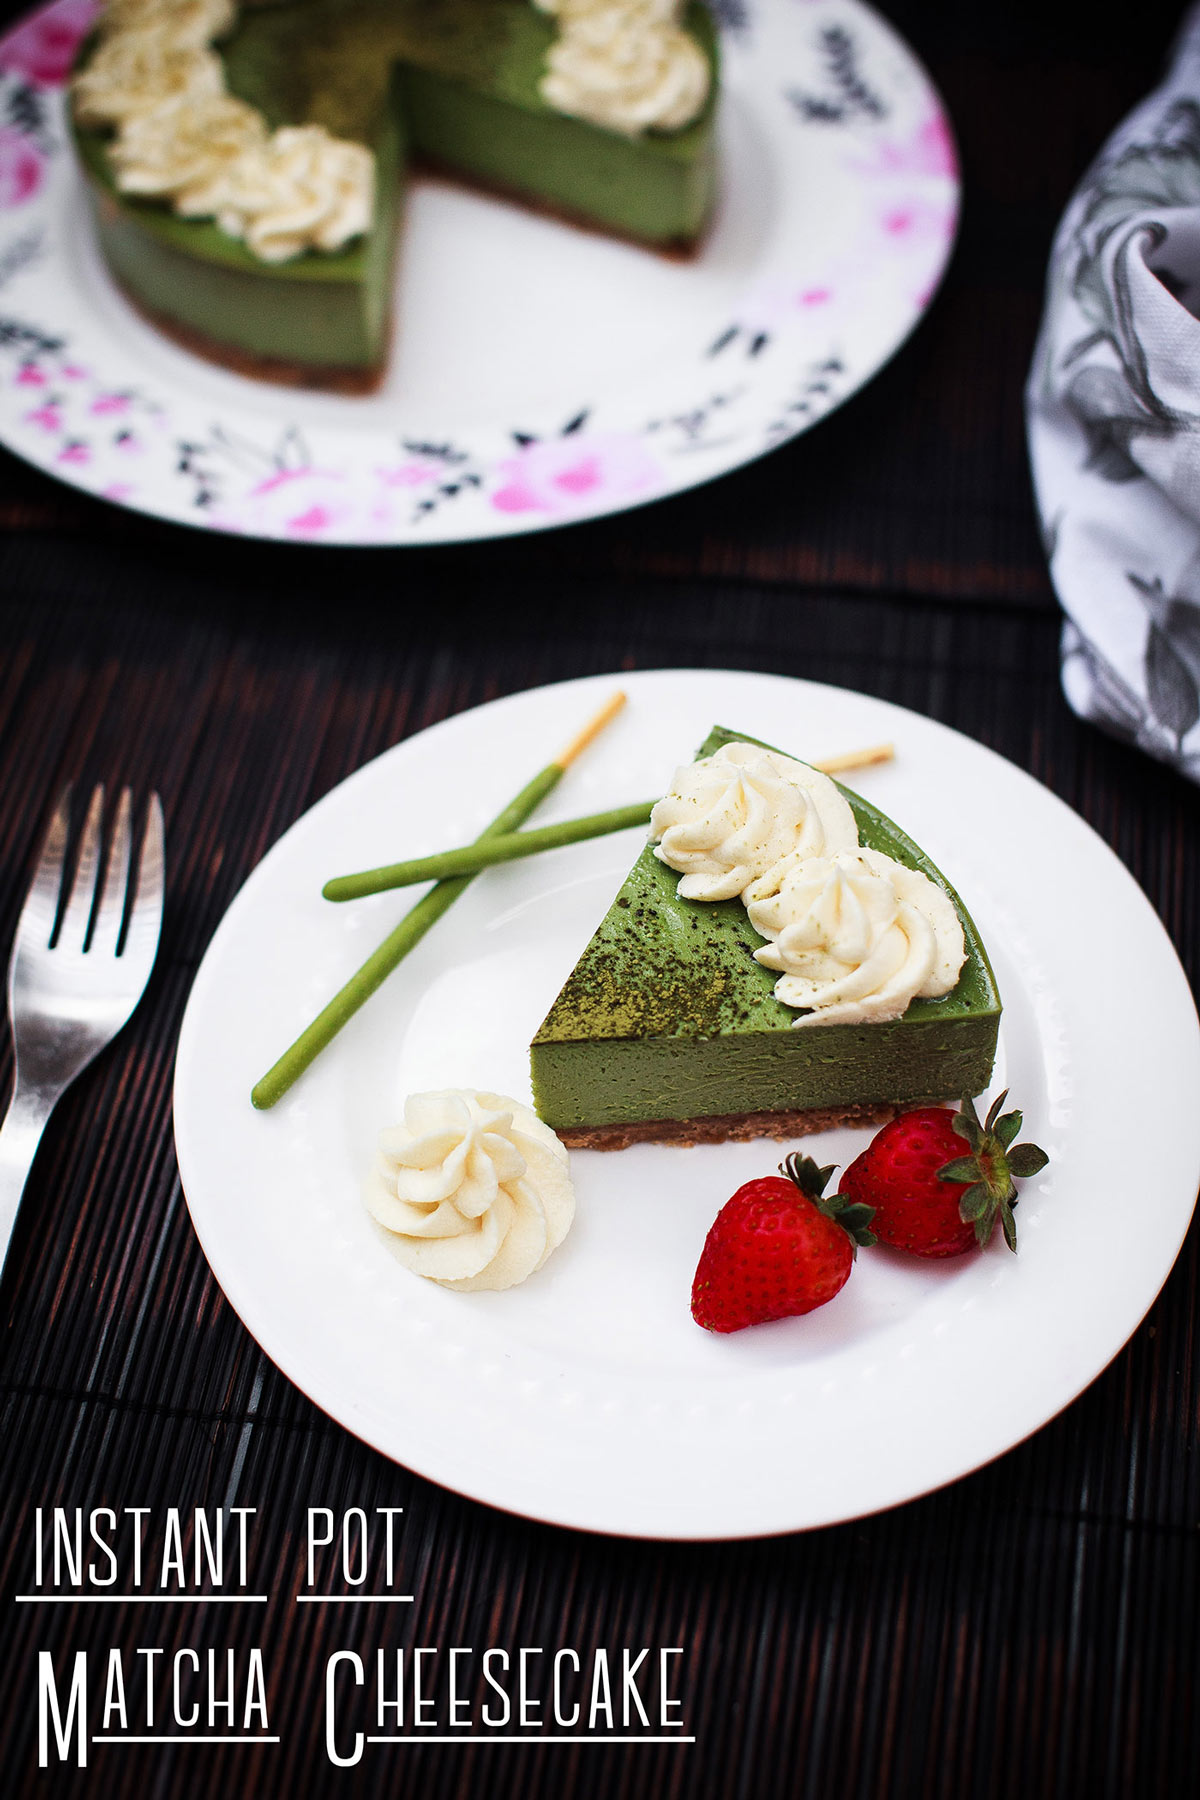 Instant Pot Matcha Cheesecake Recipe